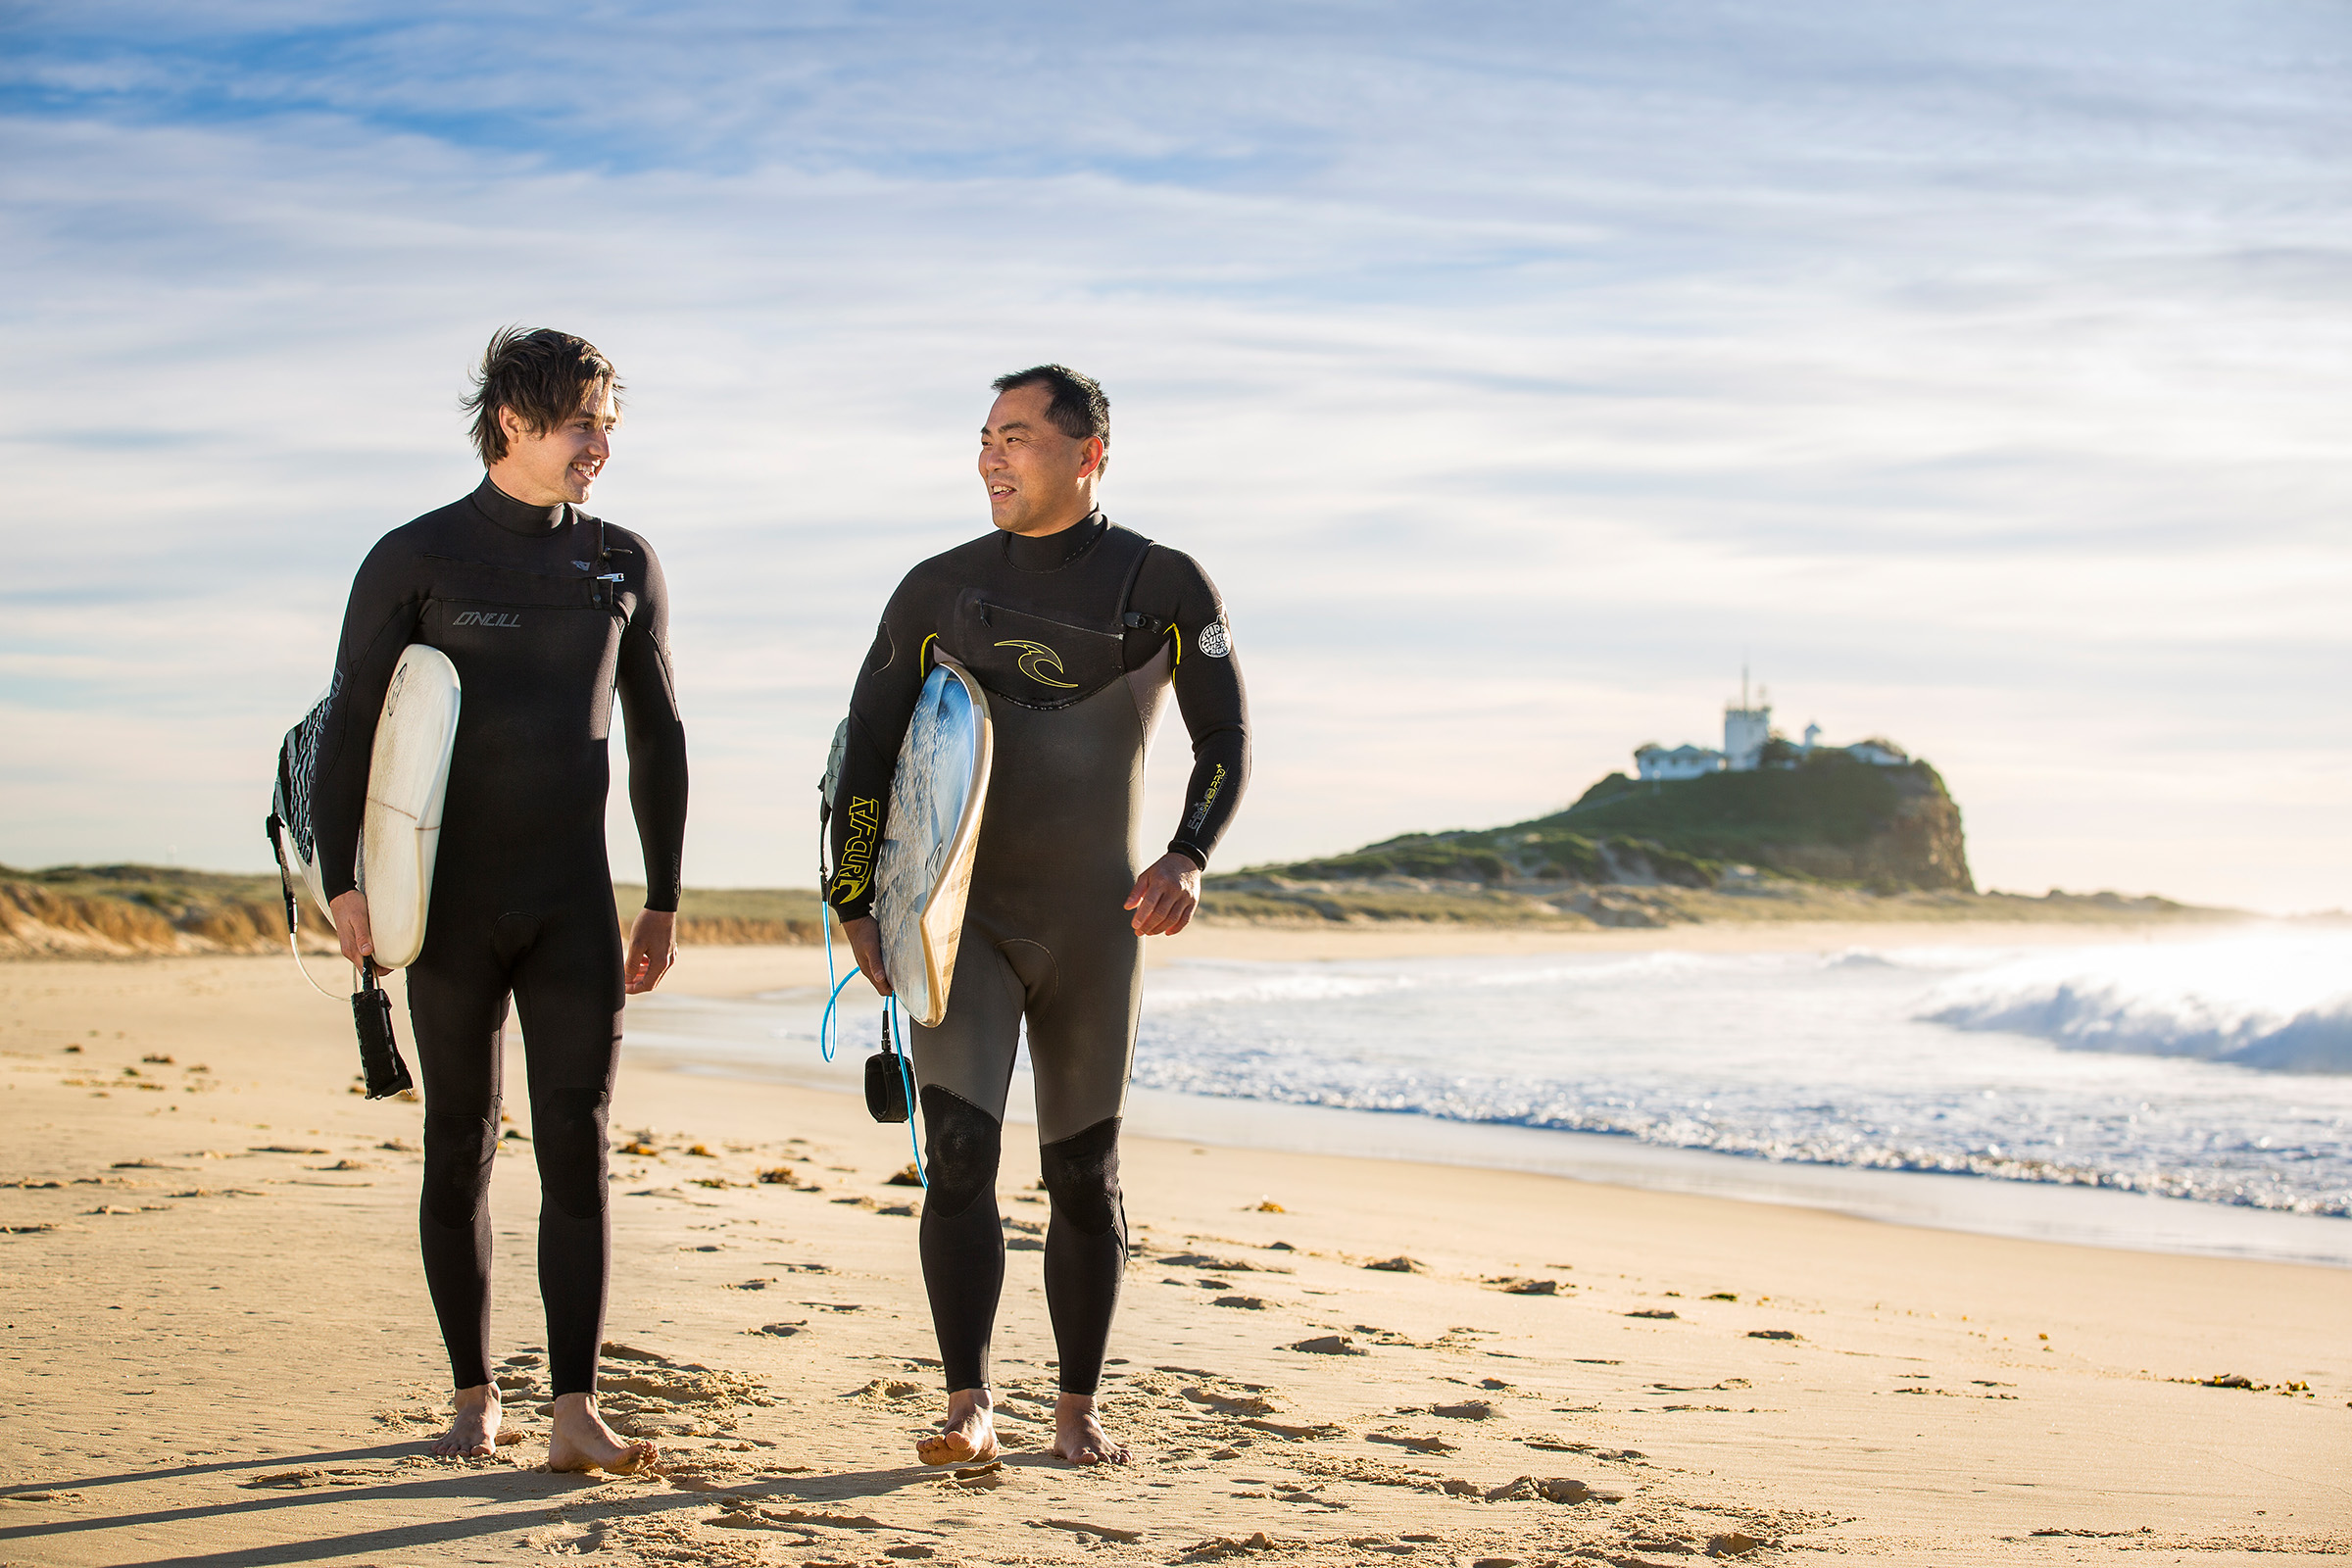 Advertising location photography for NIB of 2 surfers walking along Nobbys Beach